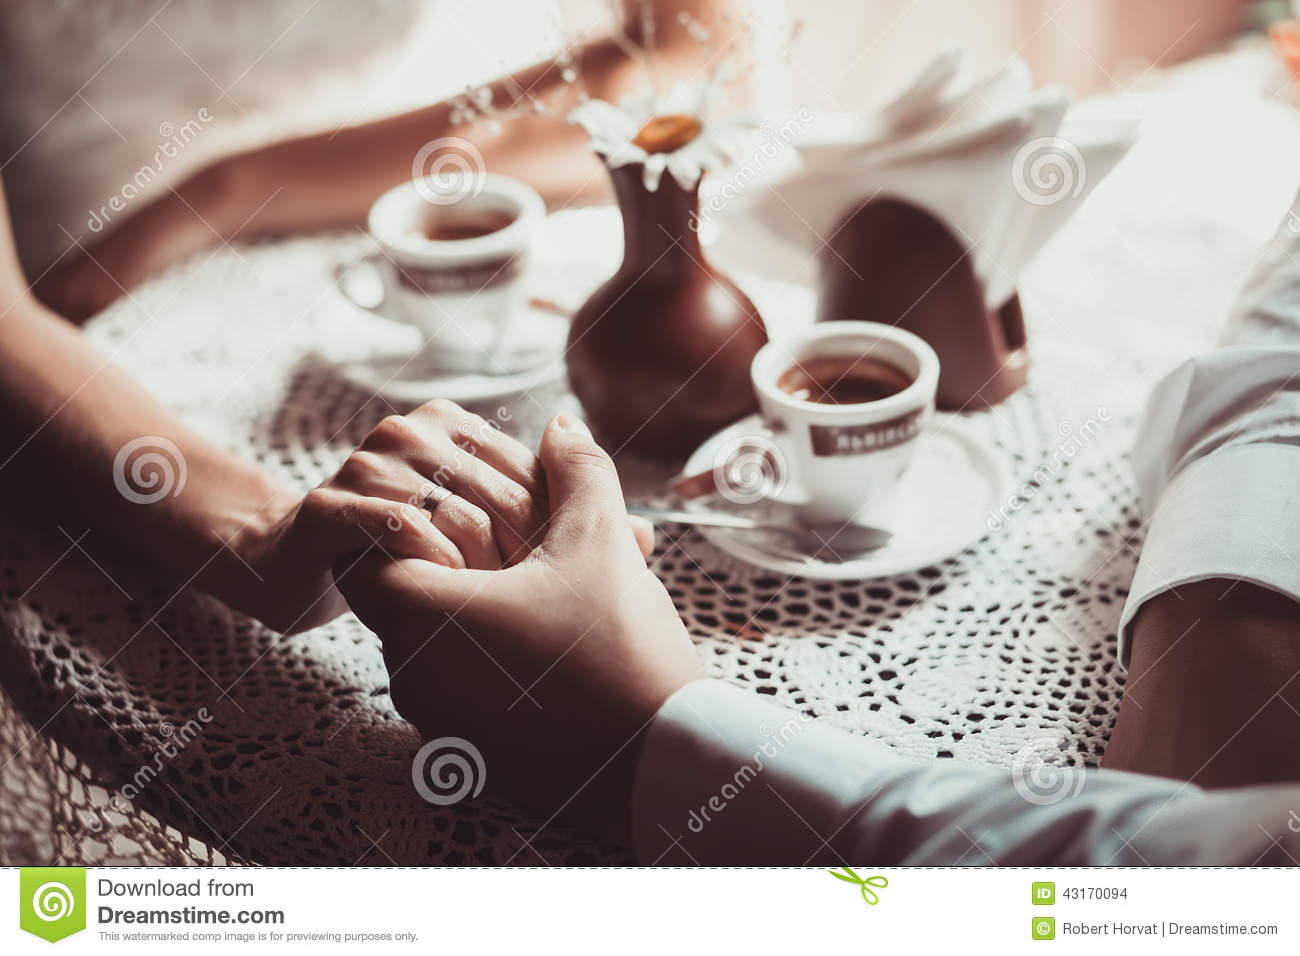 flower vase table with Stock Photo Couple Love Drink Coffee Cafe Holding Each Other S Hand Photo Processed Color Tone Concept Male Female Image43170094 on How To Wrap A Bouquet Of Fresh Flowers And A Secret Freshness Trick likewise Live Closer To Nature further Ikebana additionally Gladiolus Flower Red 33 together with Herbstliche Tischdekoration Fuer Den Geburtstag.